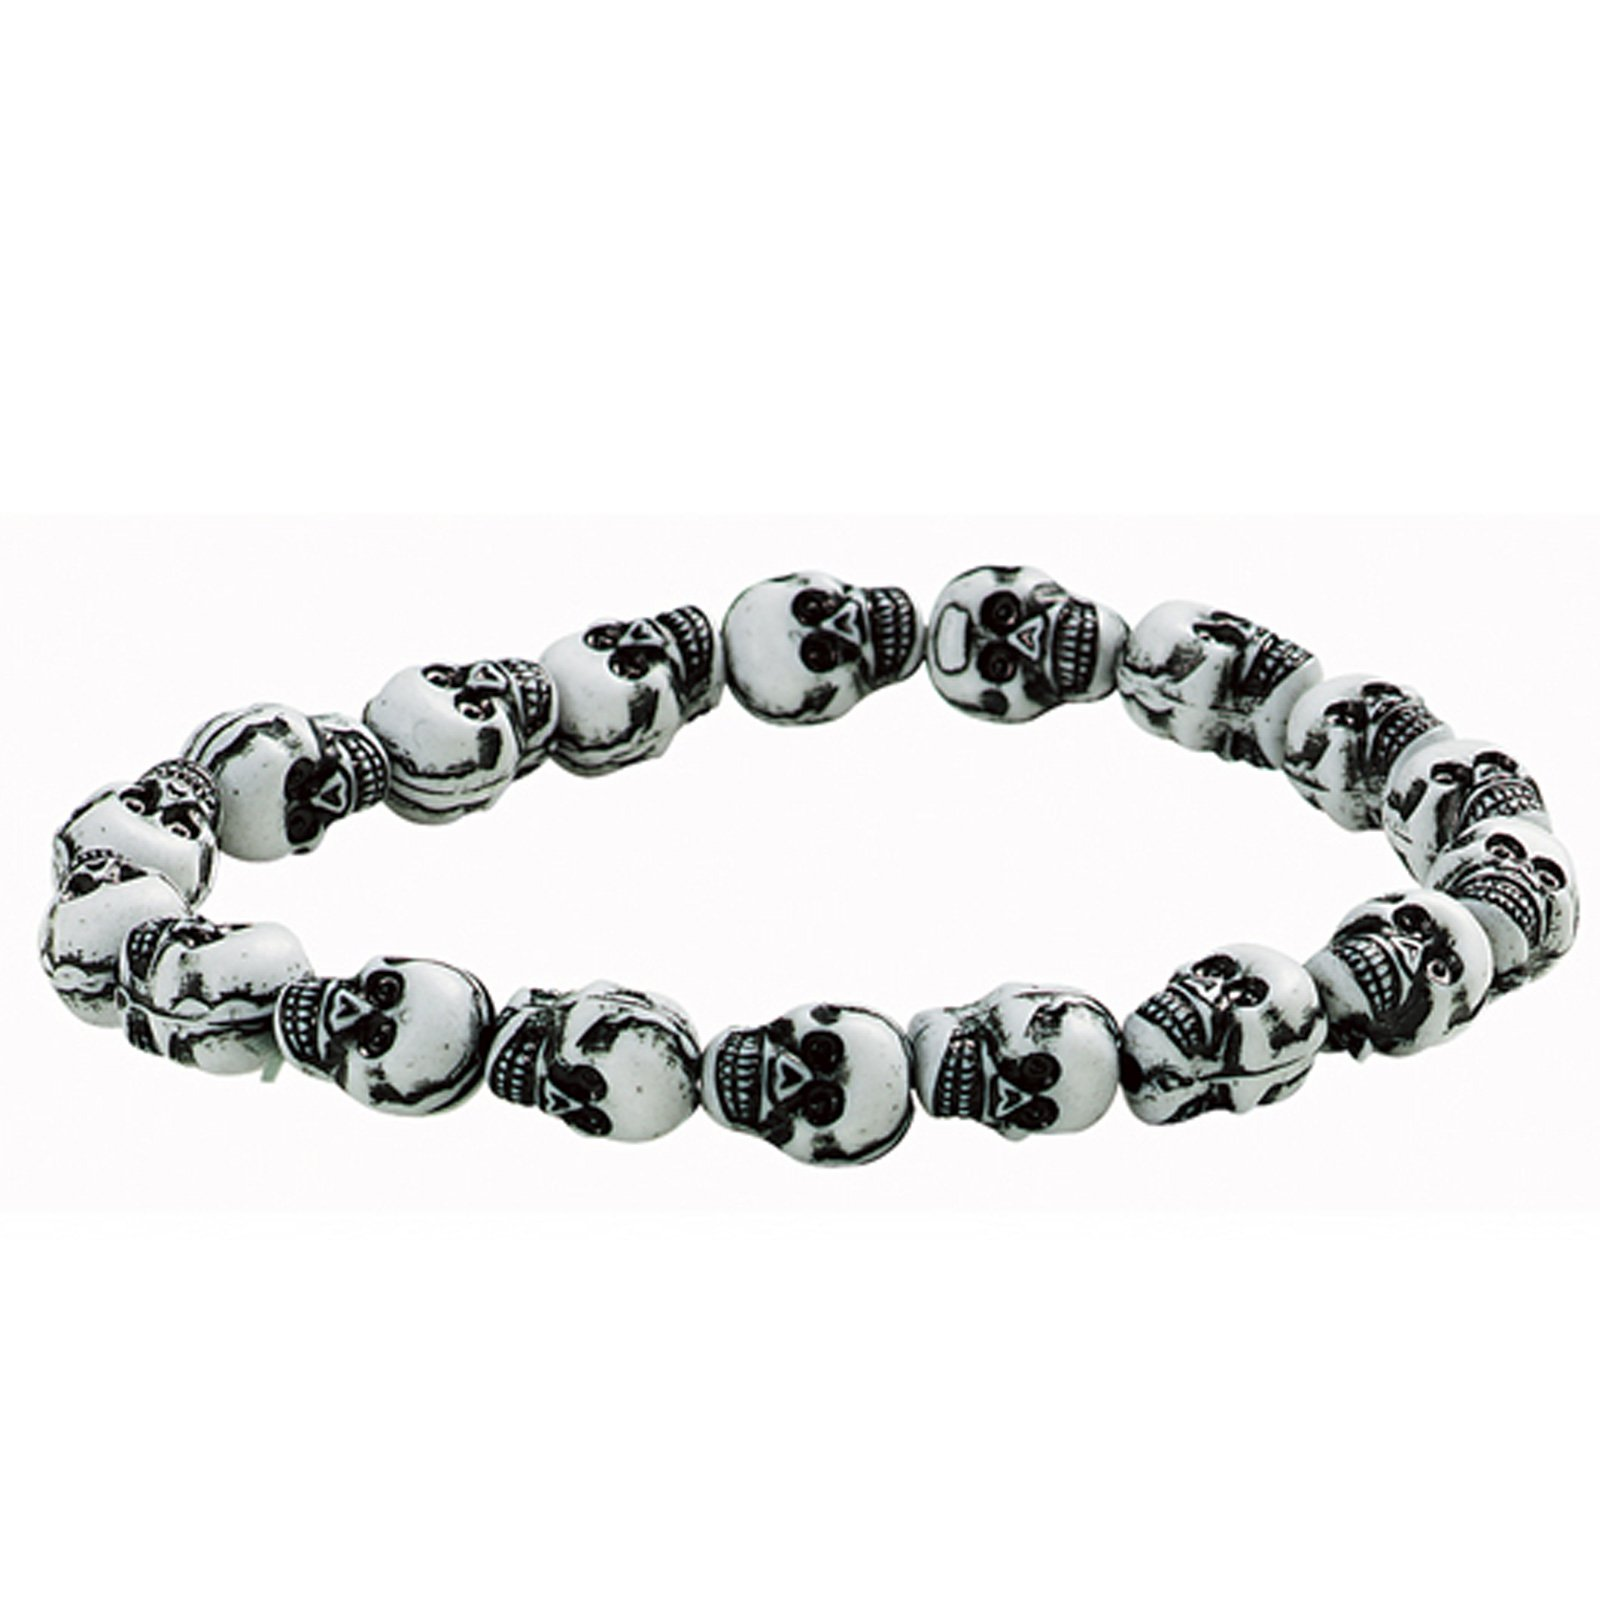 Mini Skull Bracelet (1 count) - Click Image to Close